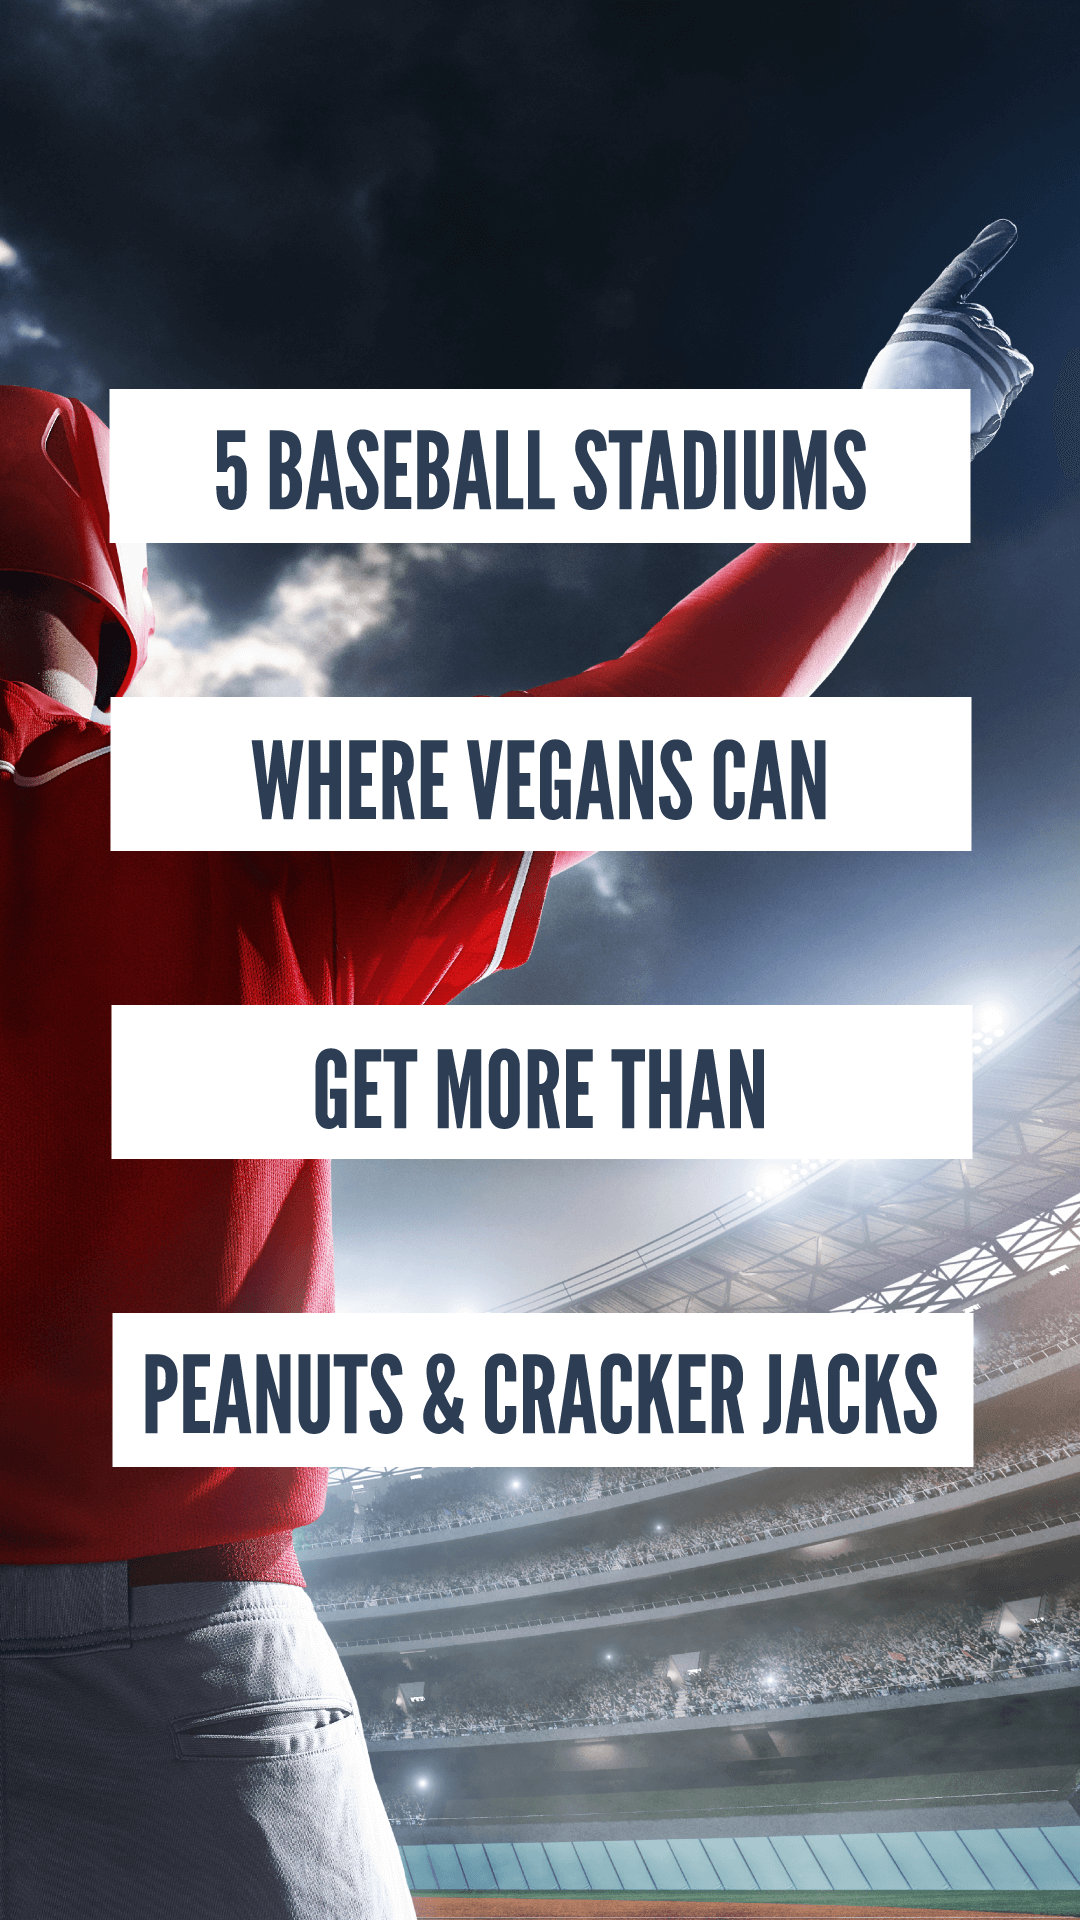 Plant-Based? Here Are 5 Baseball Stadiums Where You Can Get More Than Peanuts and Cracker Jacks